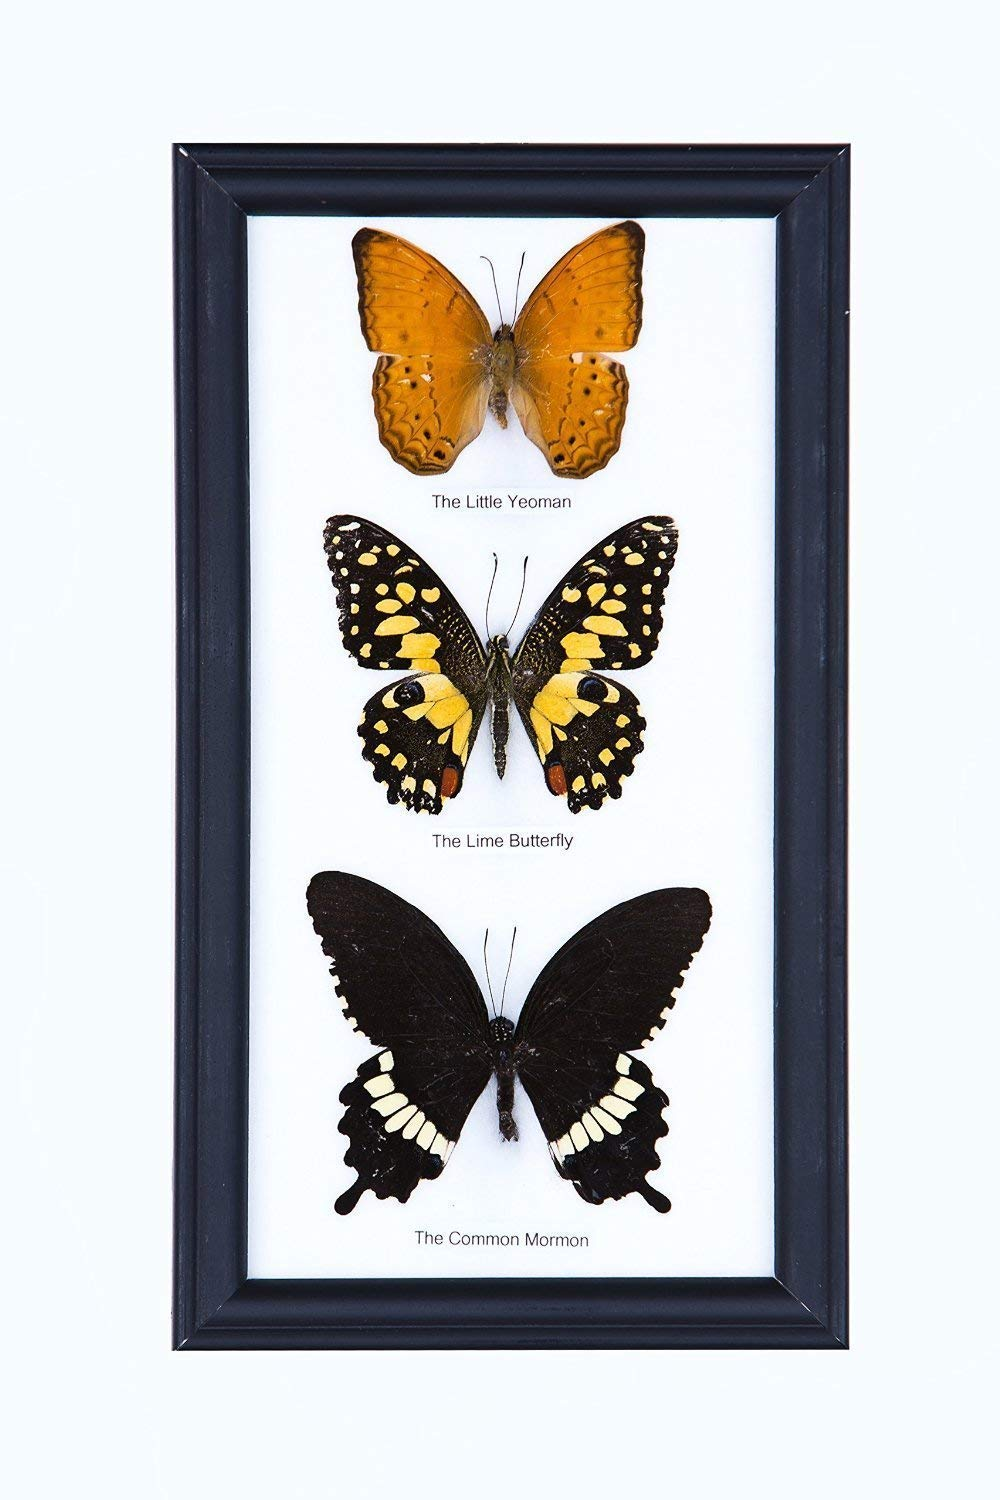 9 x 5 inches Assorted Species Real Butterfly Taxidermy Wall Decor Three Real Framed Butterflies | Every Display Frame is Unique!